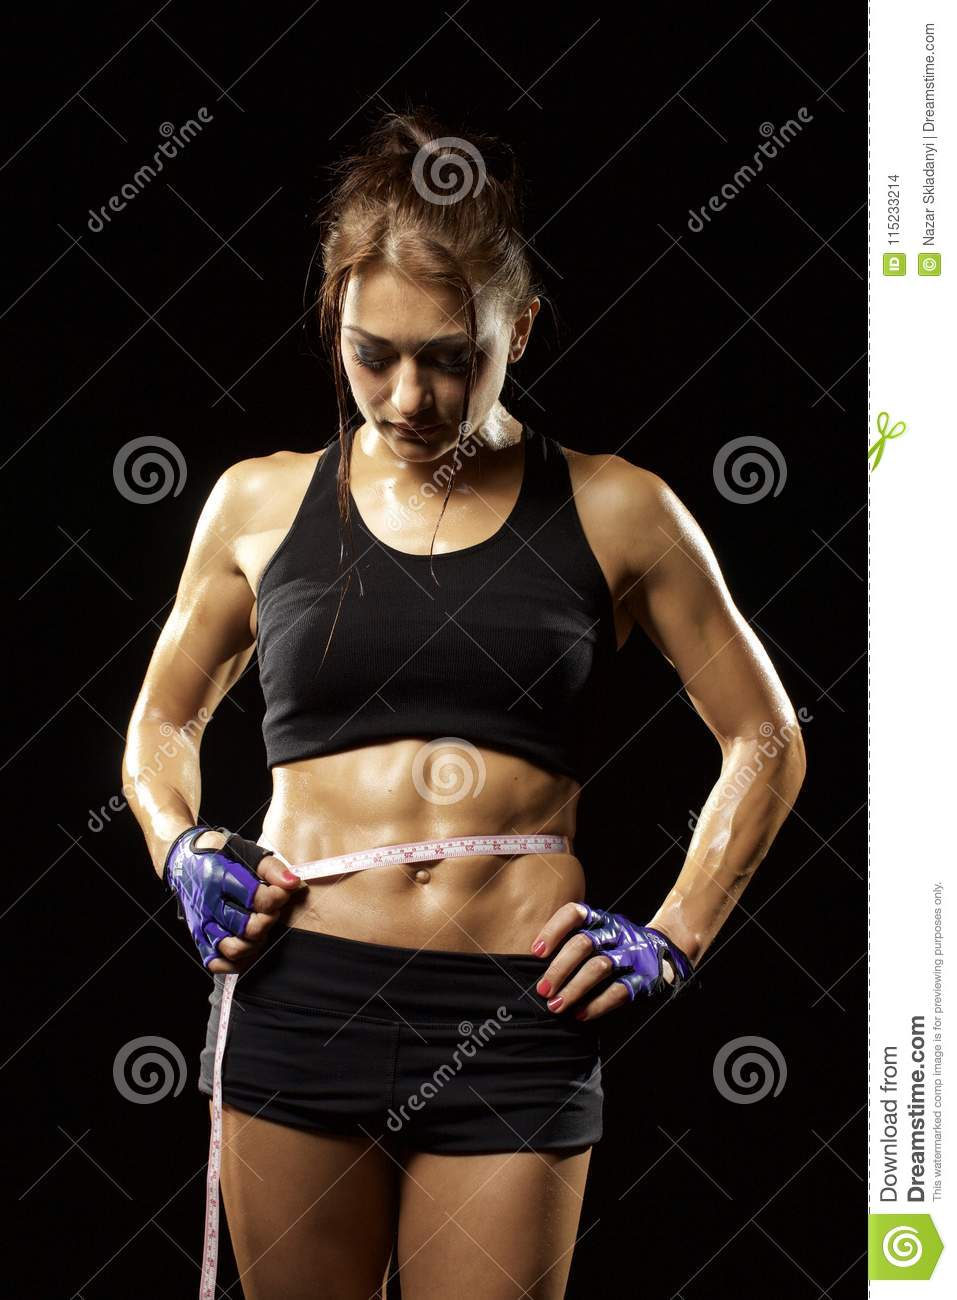 Fitness Woman In Sportswear With Ideal Fitness Body Checking